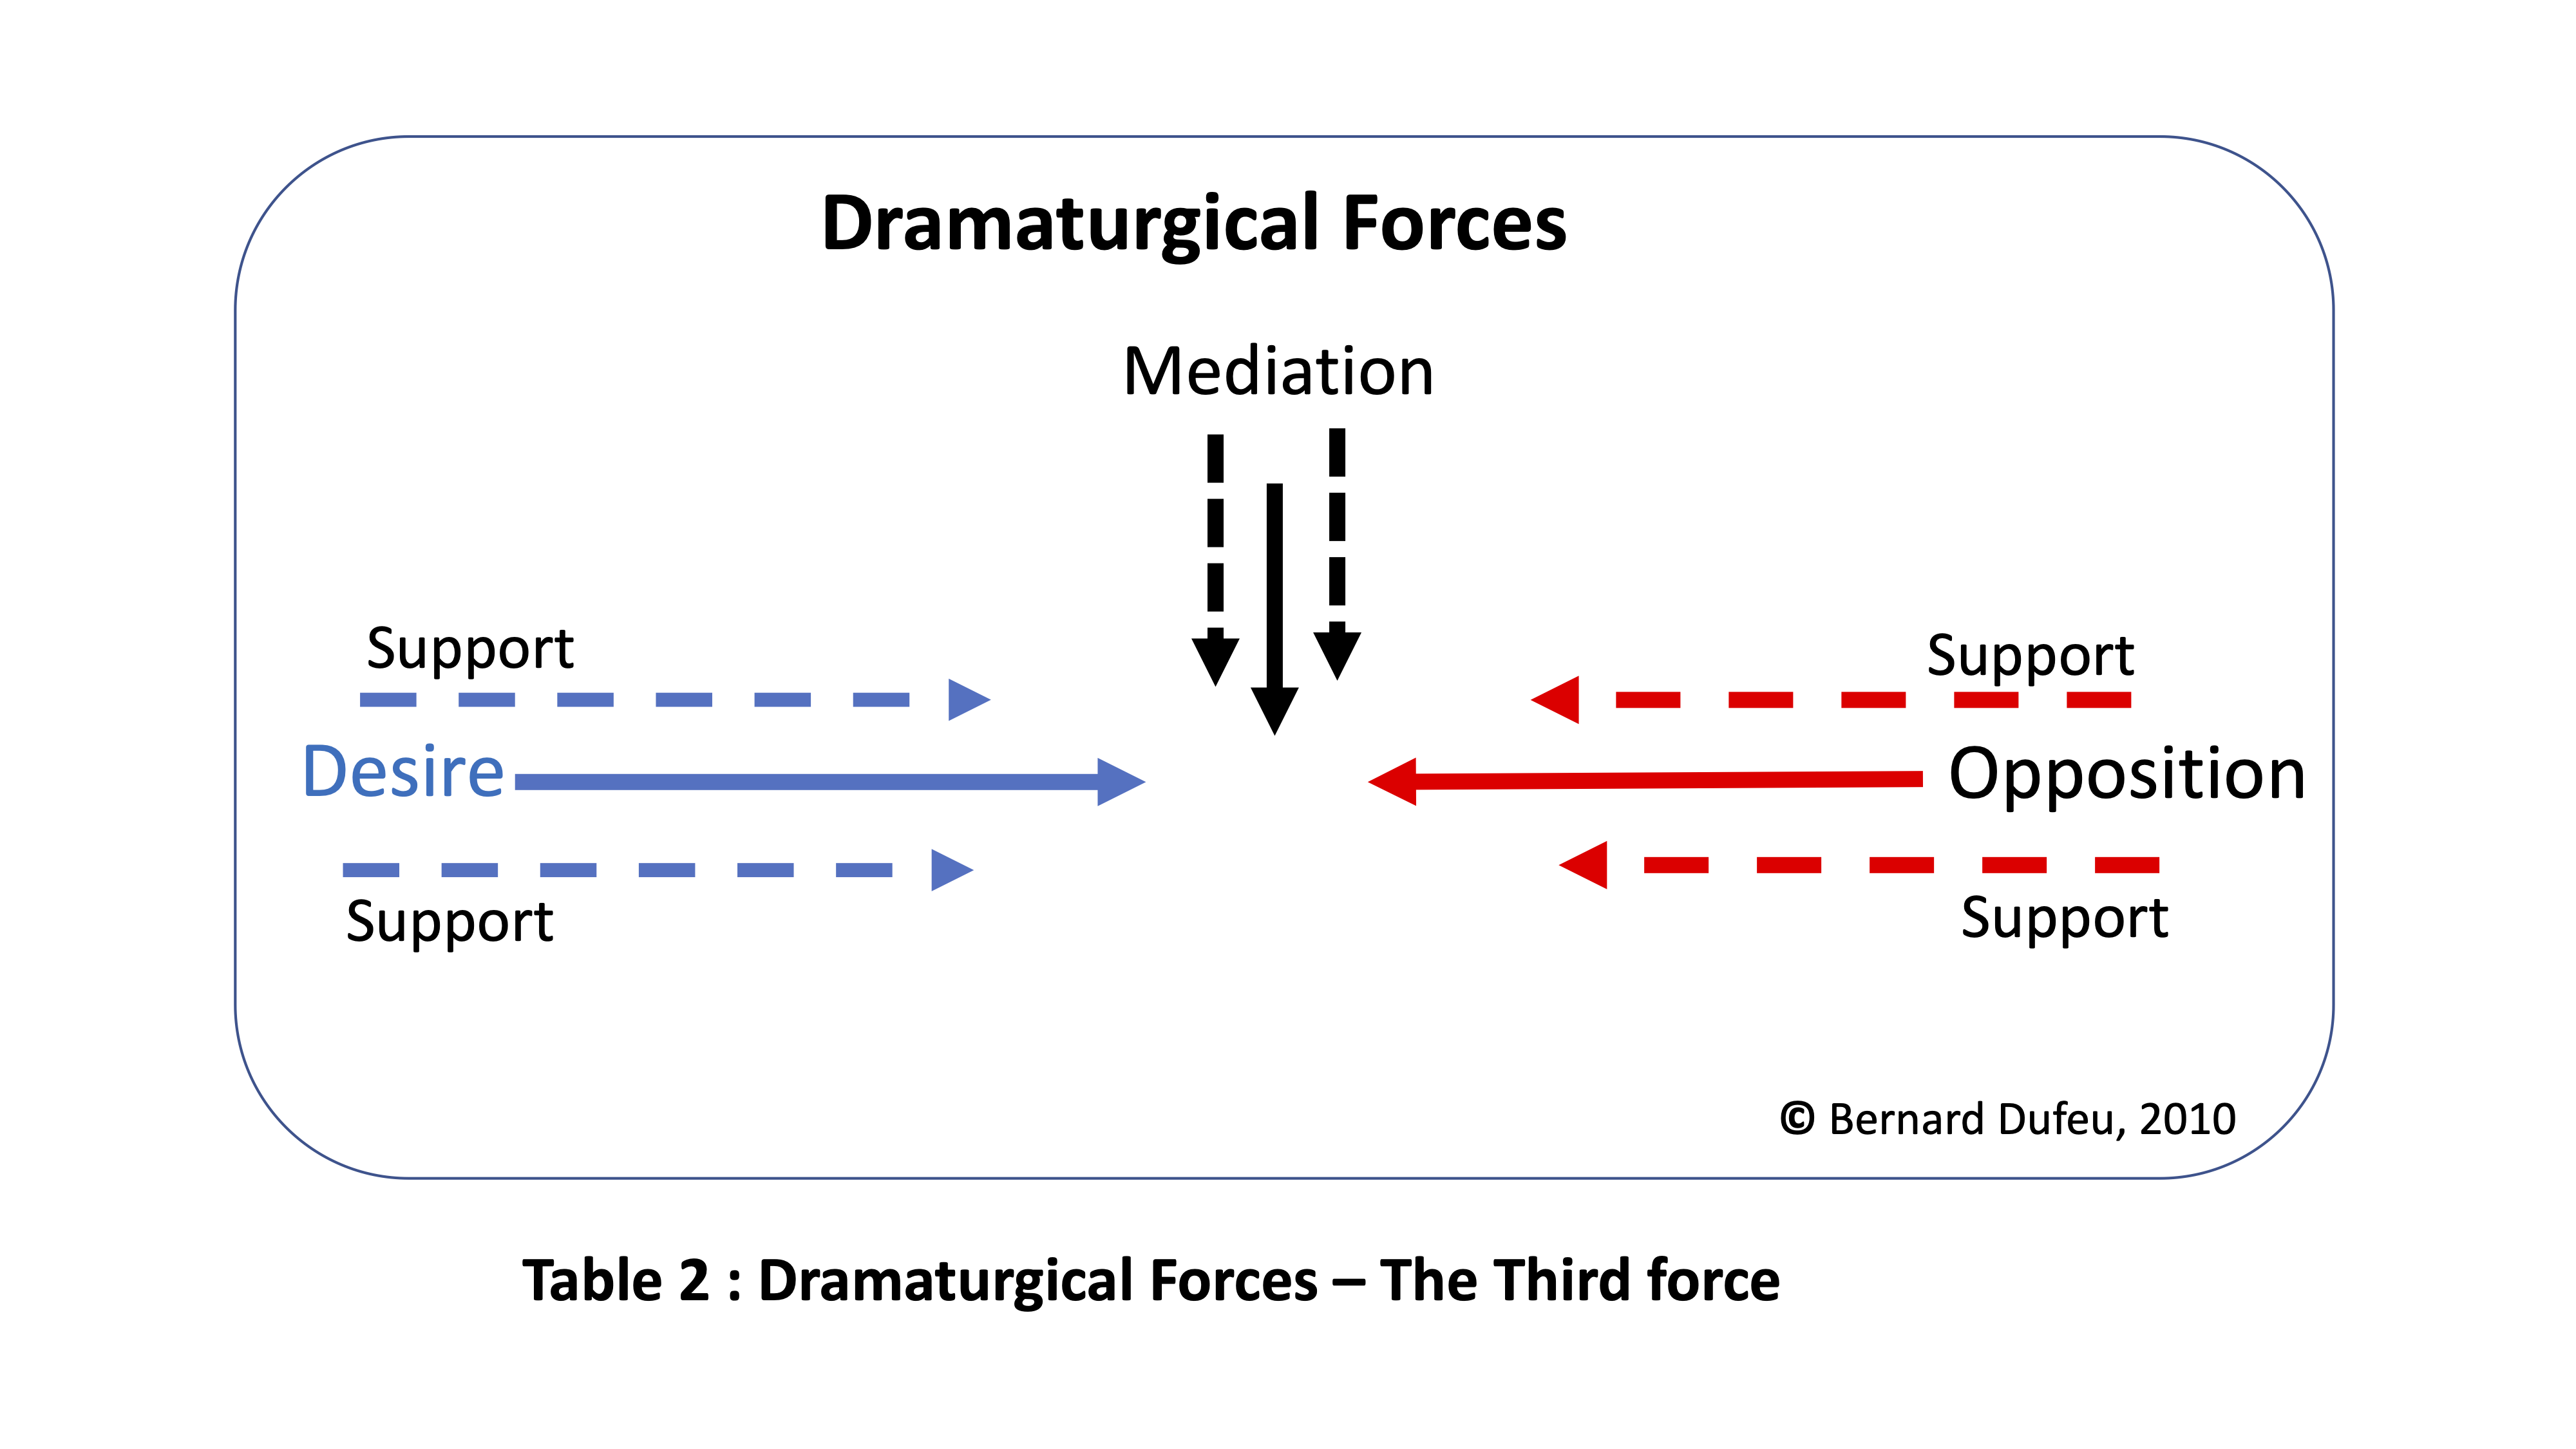 Dramaturgical Forces 2